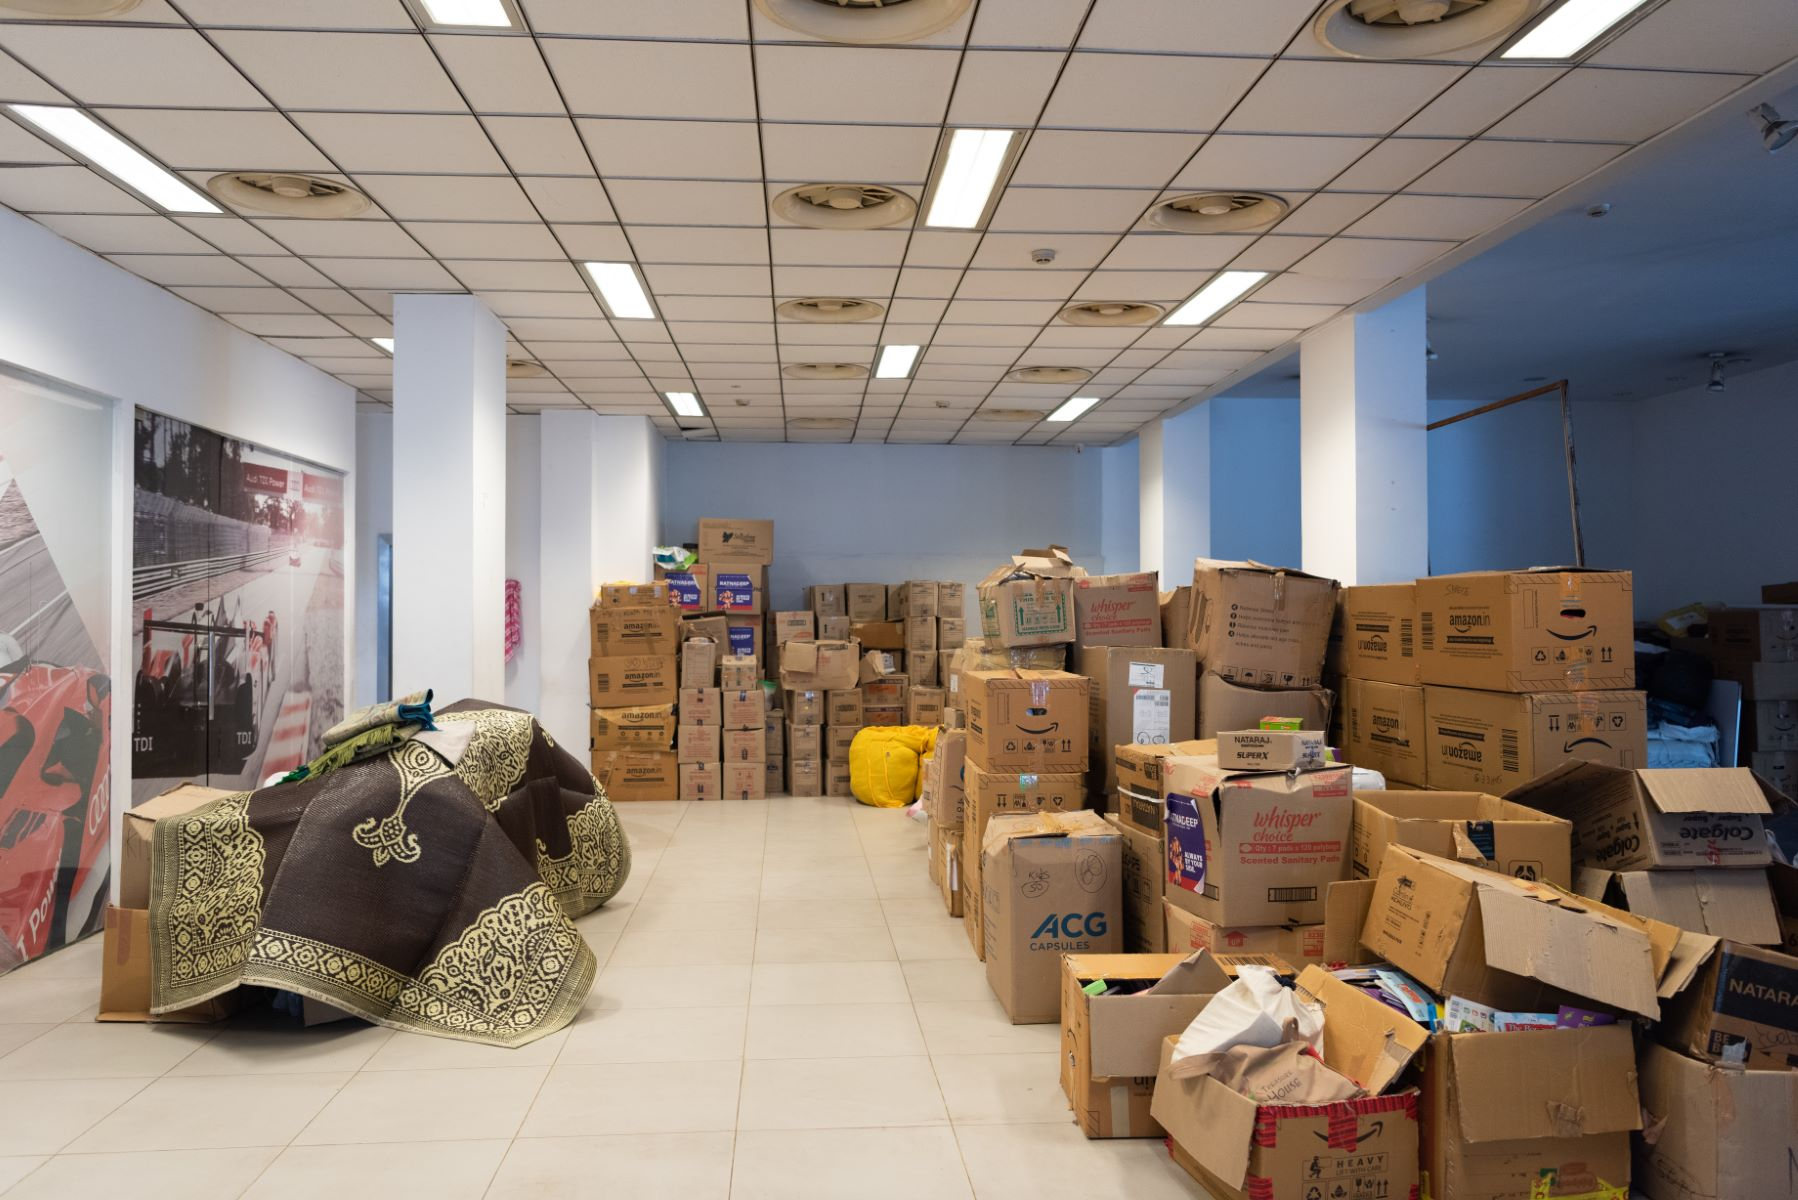 Truckloads of clothes, toiletries, and ration were sorted into kits as part of the relief efforts